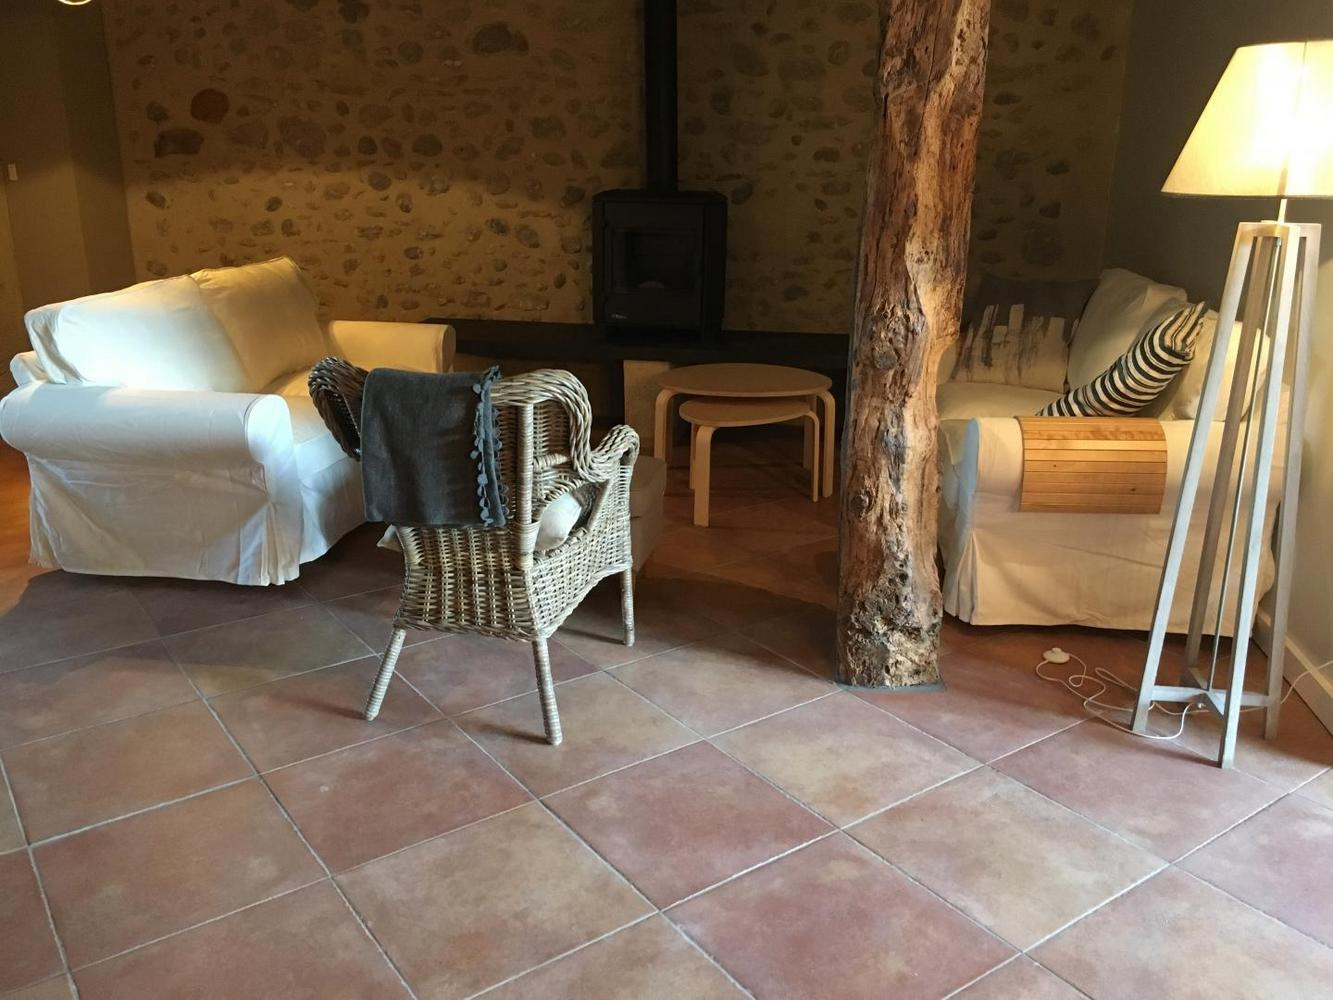 Chambres d'hotes d'Ambroisie, Aude - photo #11